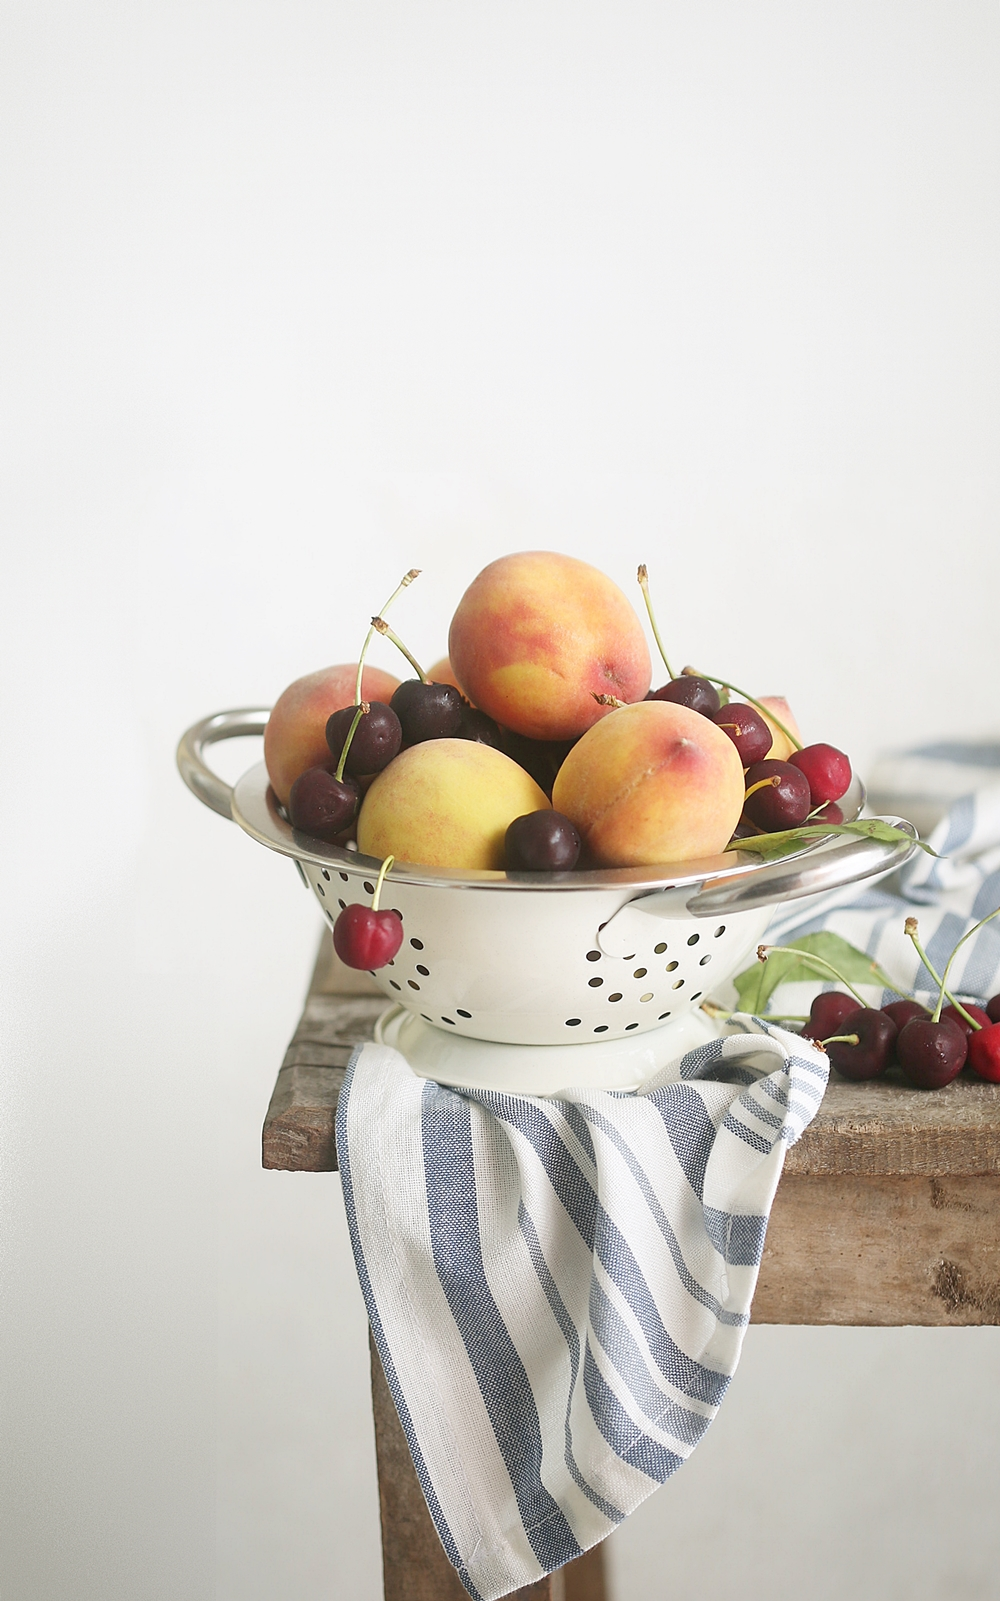 Peaches, cherries, stone fruit